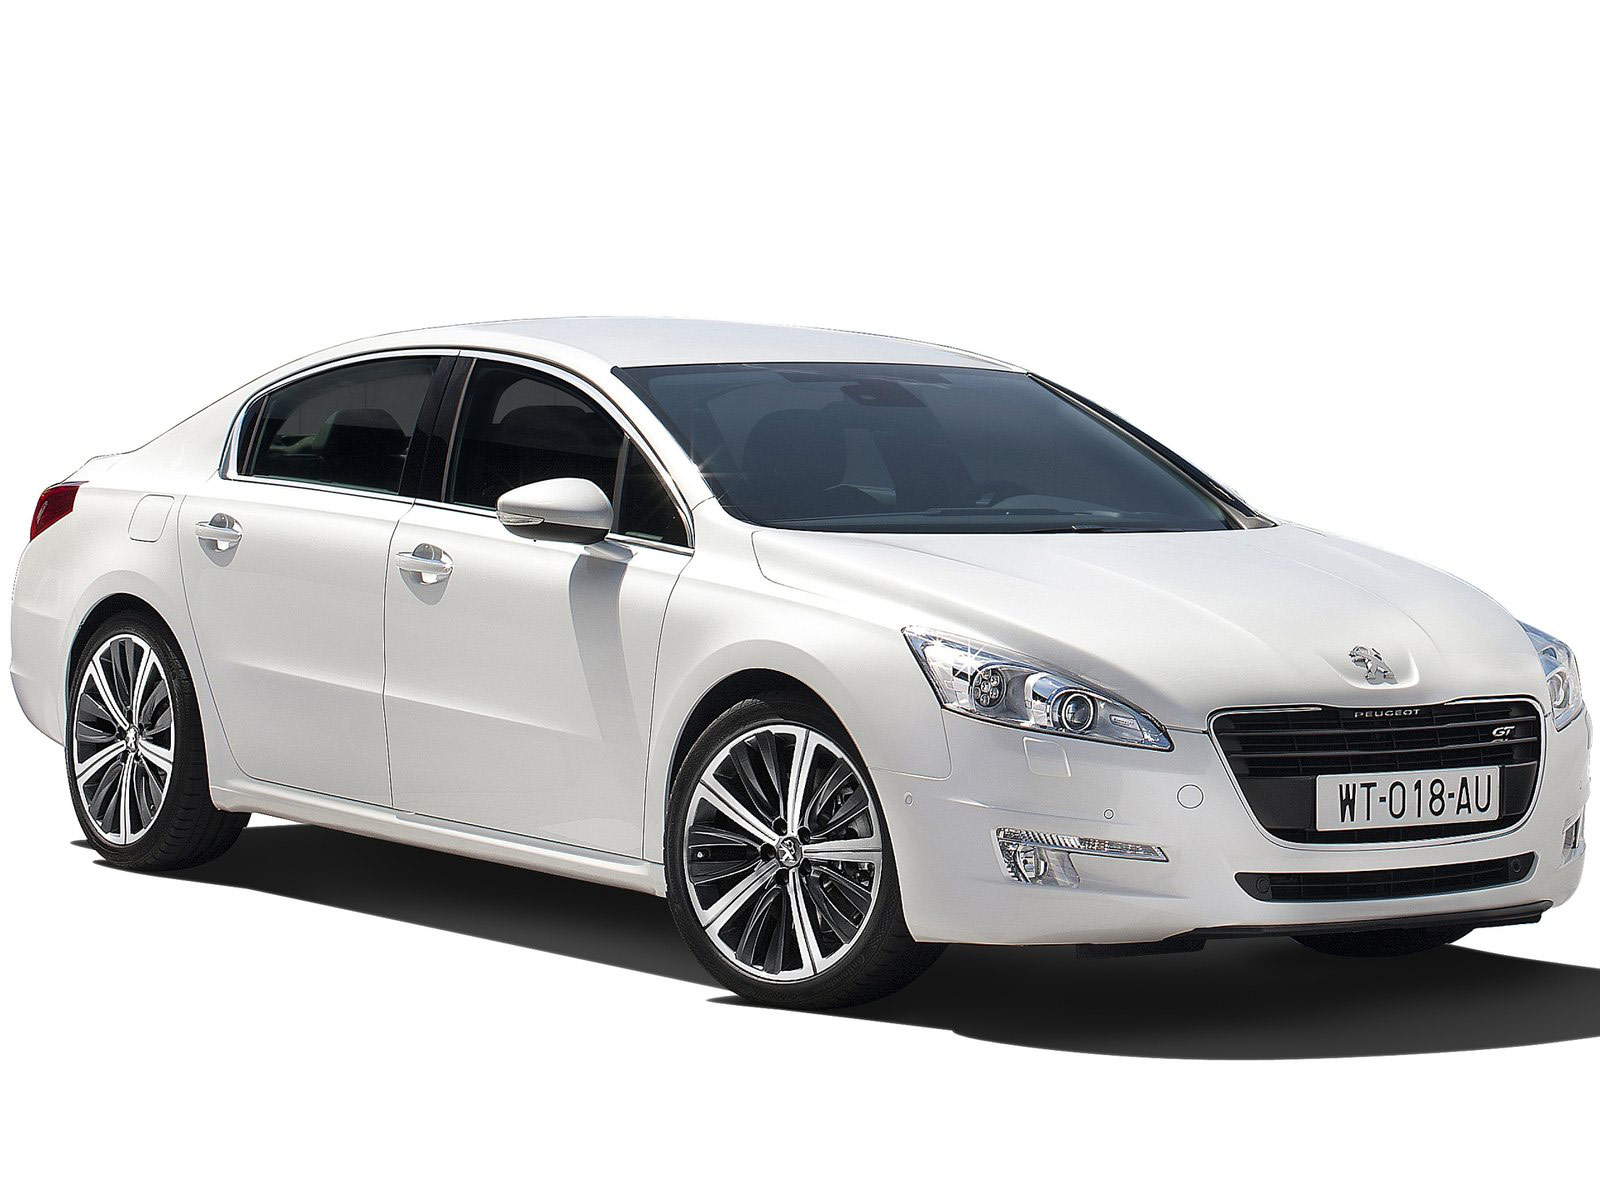 PEUGEOT 508 Pictures Insurance Informations (2011